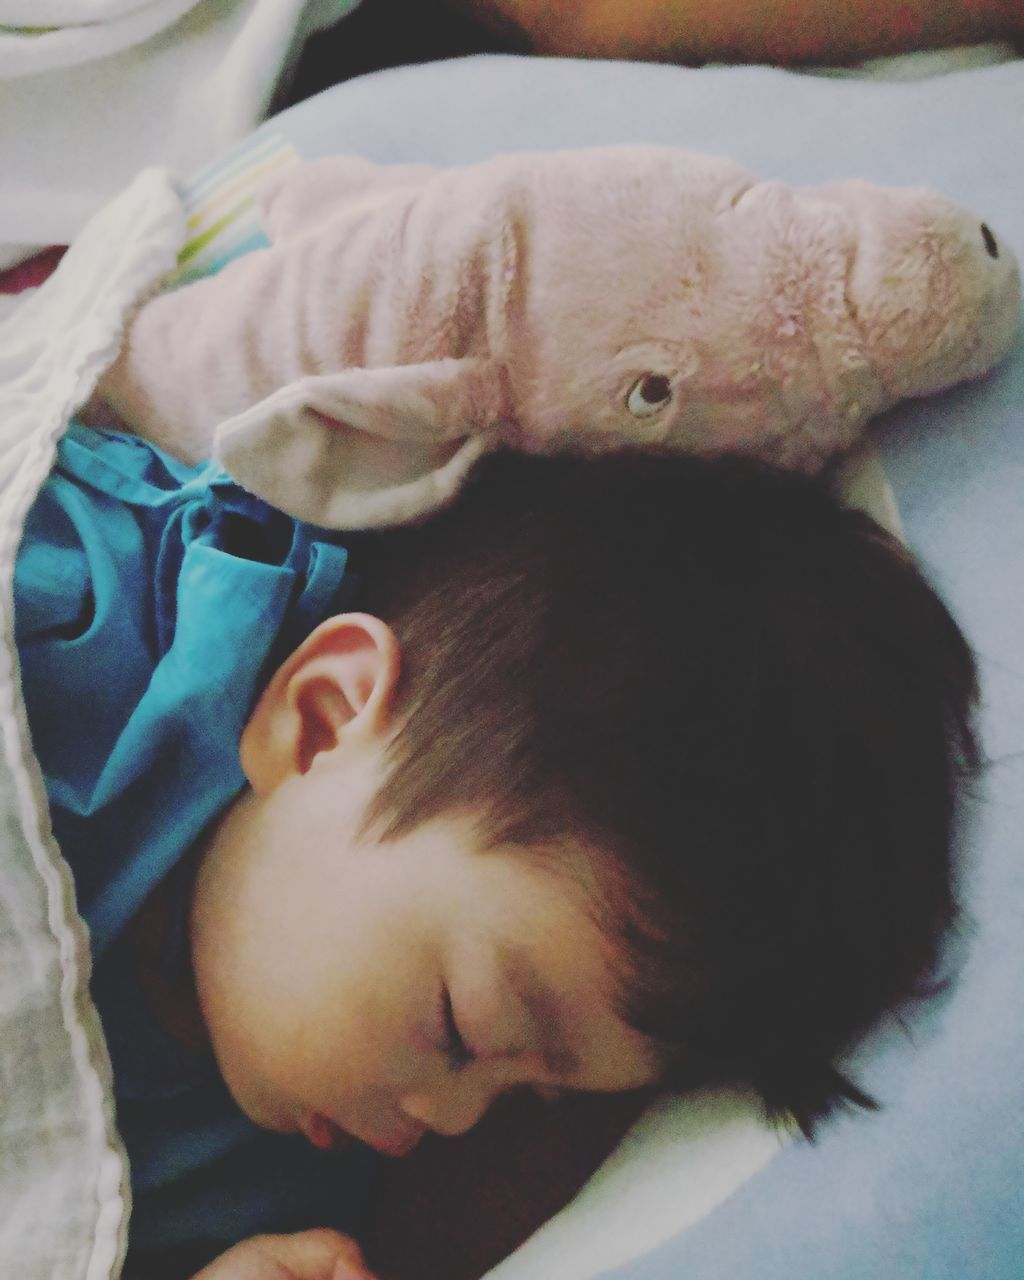 HIGH ANGLE VIEW OF CUTE BABY SLEEPING IN BED